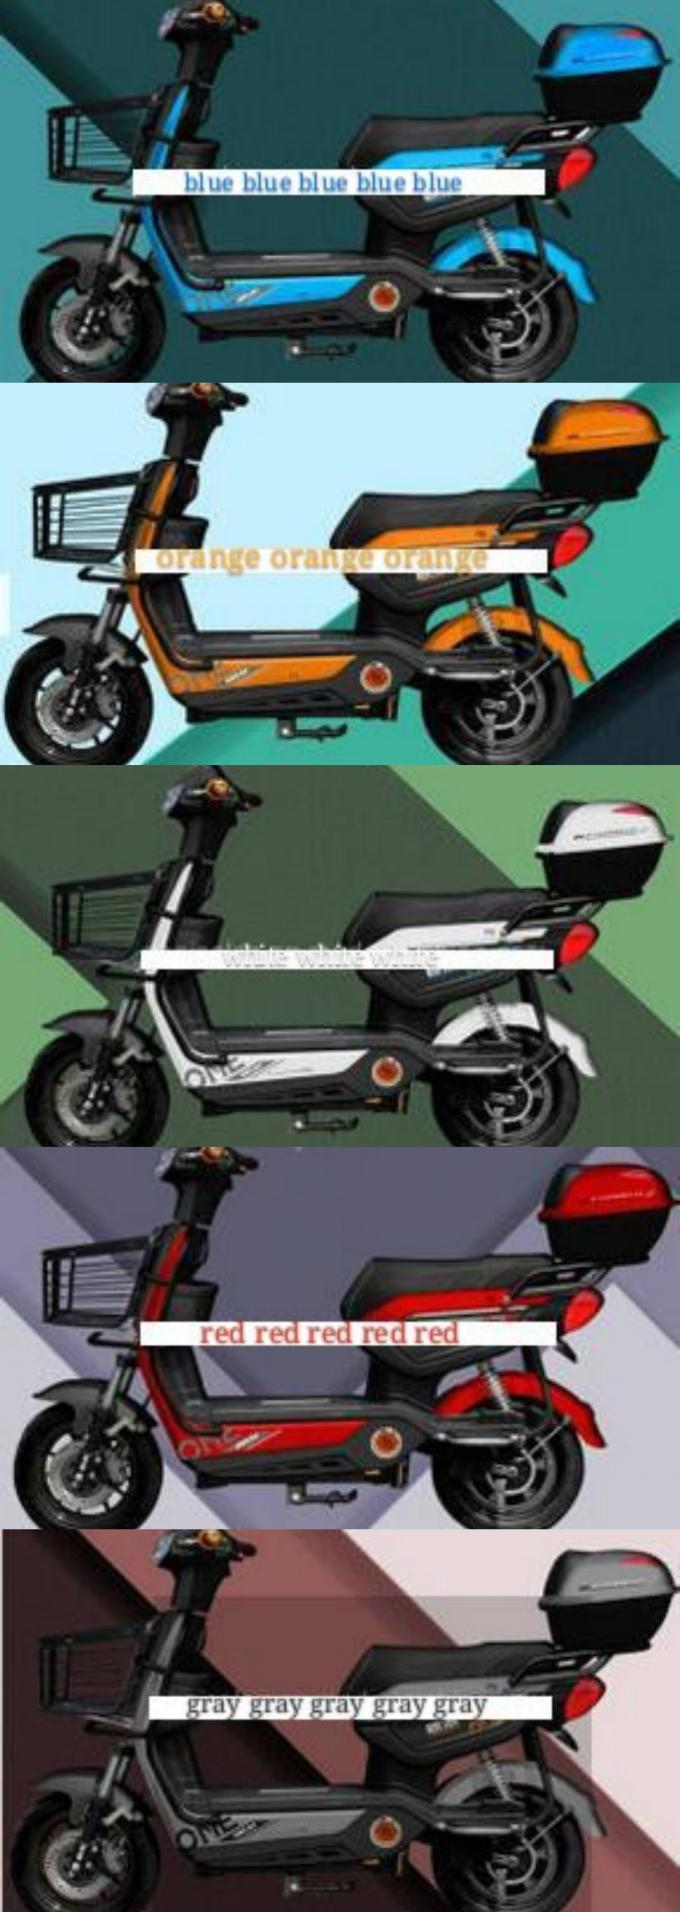 48V500W Pedal Assist Electric Bike / Scooter Lead Acid Battery